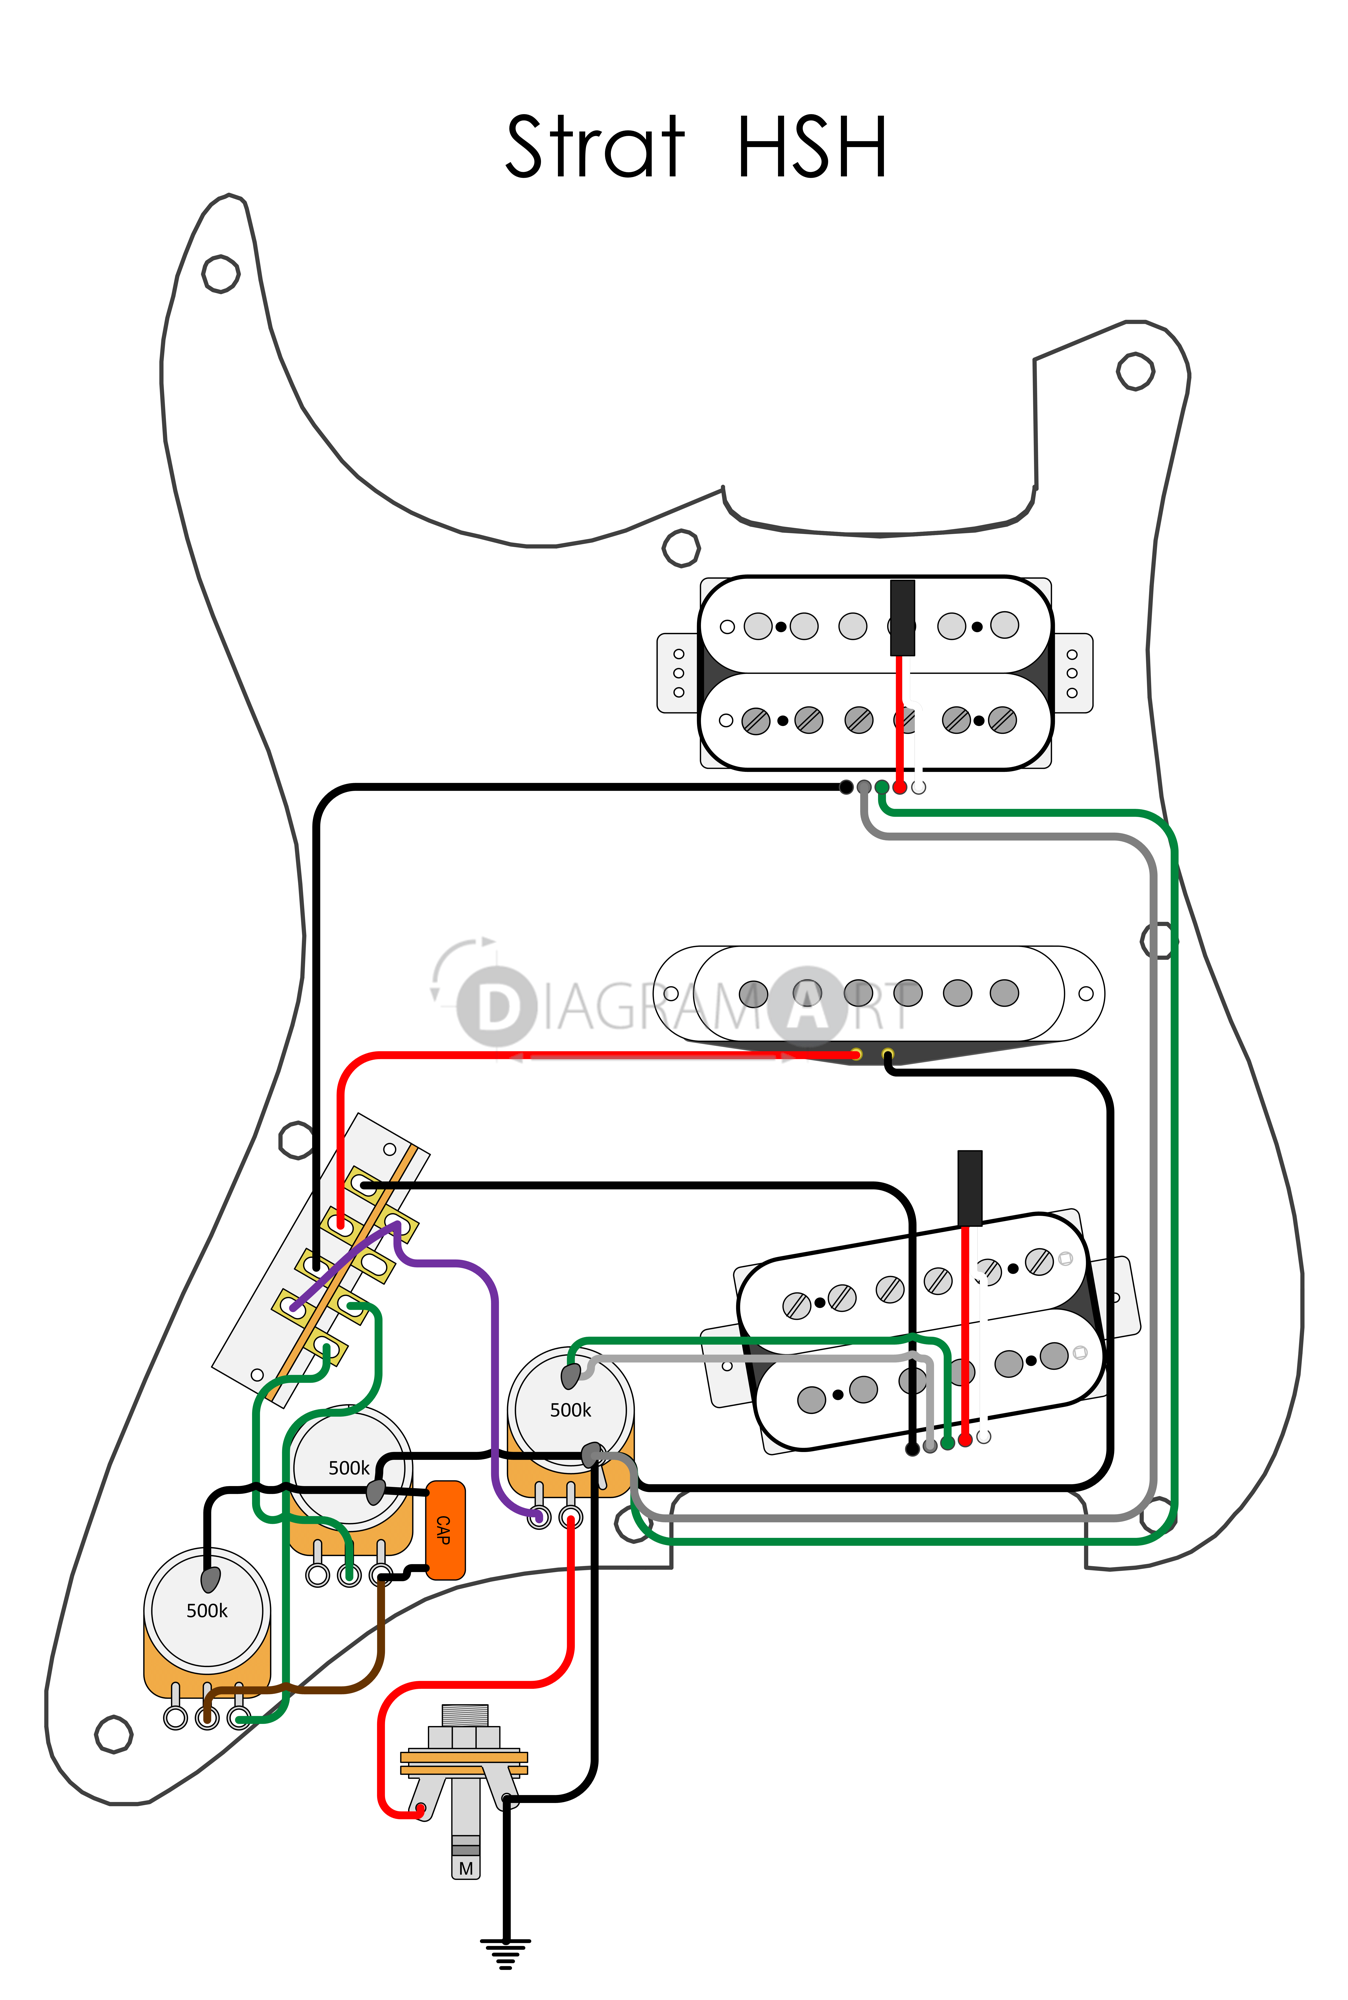 ernie ball wiring diagram bjnpap danielaharde de \u2022 Ansul System Wiring Diagram electric guitar hsh wiring diagram wiring schematic diagram rh 108 twizer co ernie ball wiring diagrams